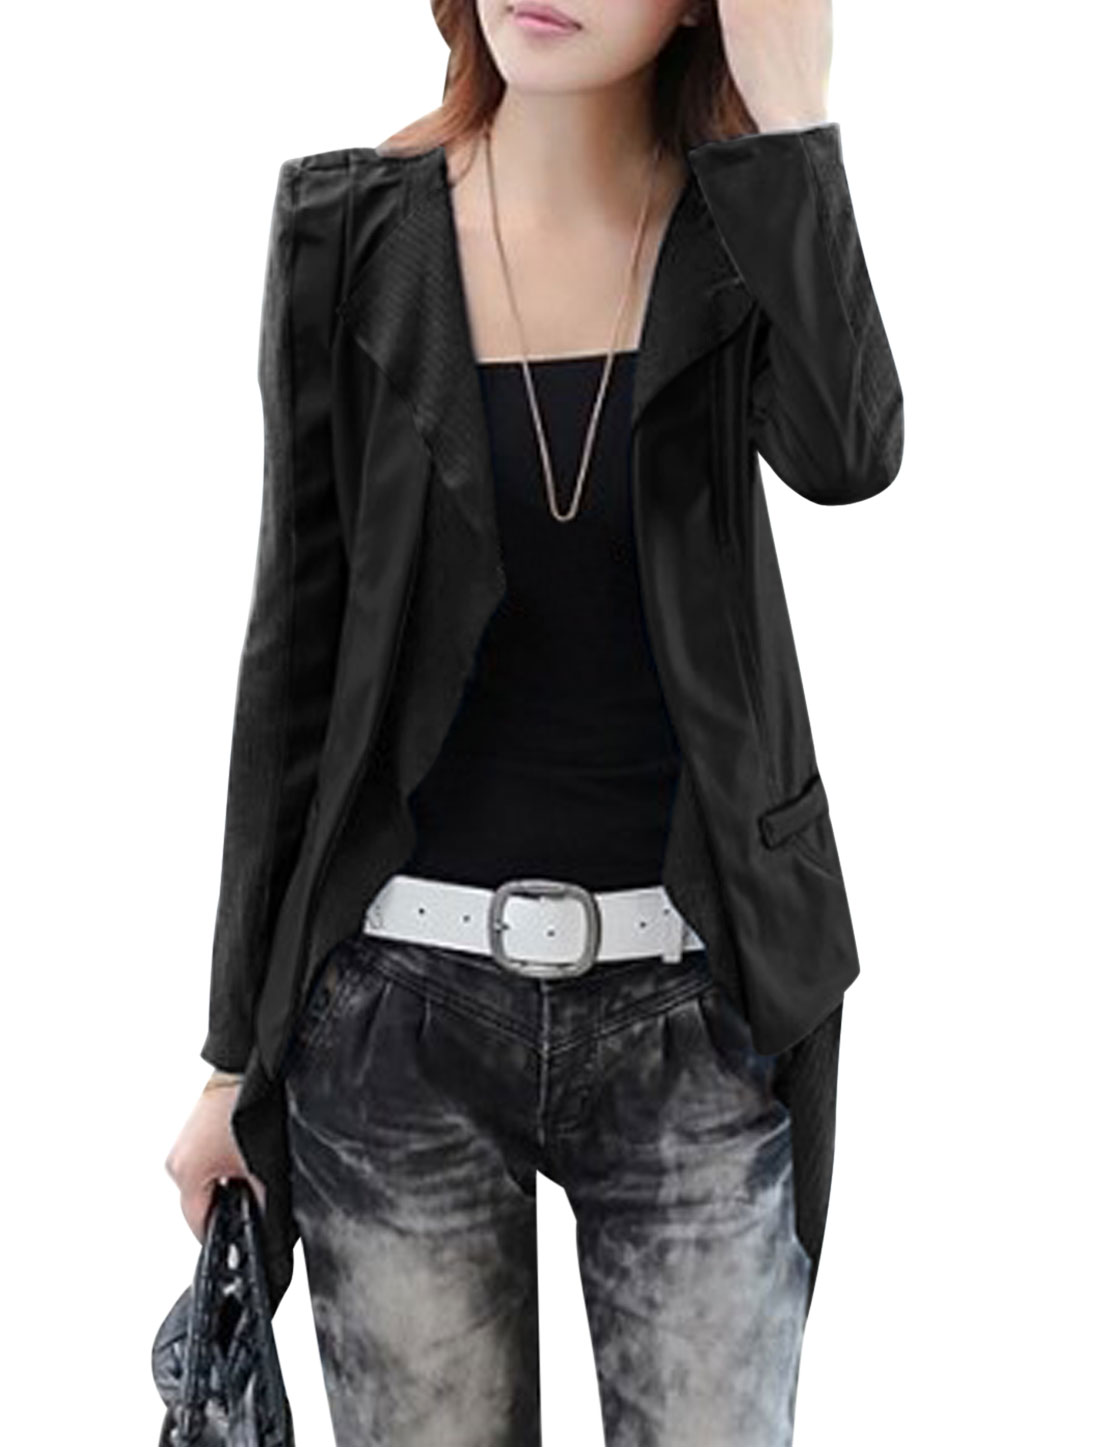 Lady Fake Two Pieces Panel Design Imitation Leather Jacket Black S